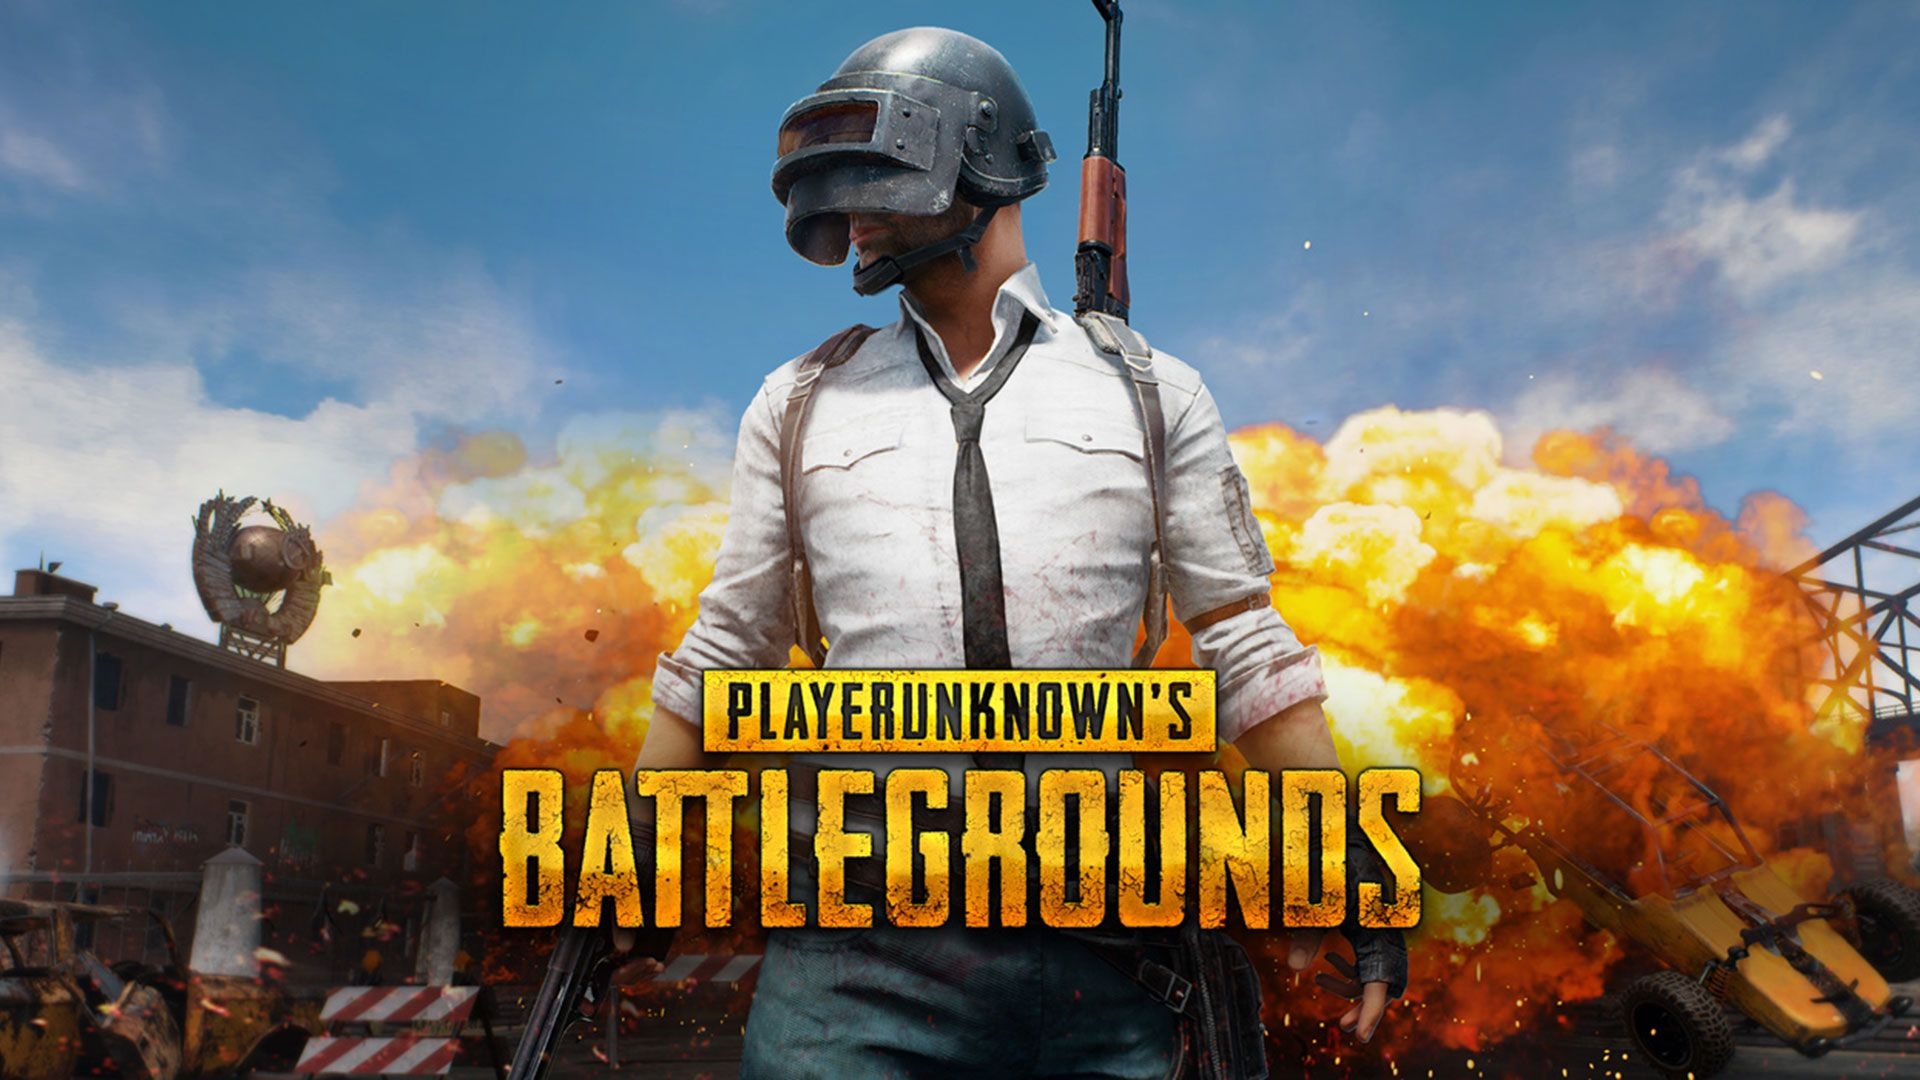 Pubg Wallpaper Hd Pc: Pubg Wallpapers Full Hd On Wallpaper 1080p HD